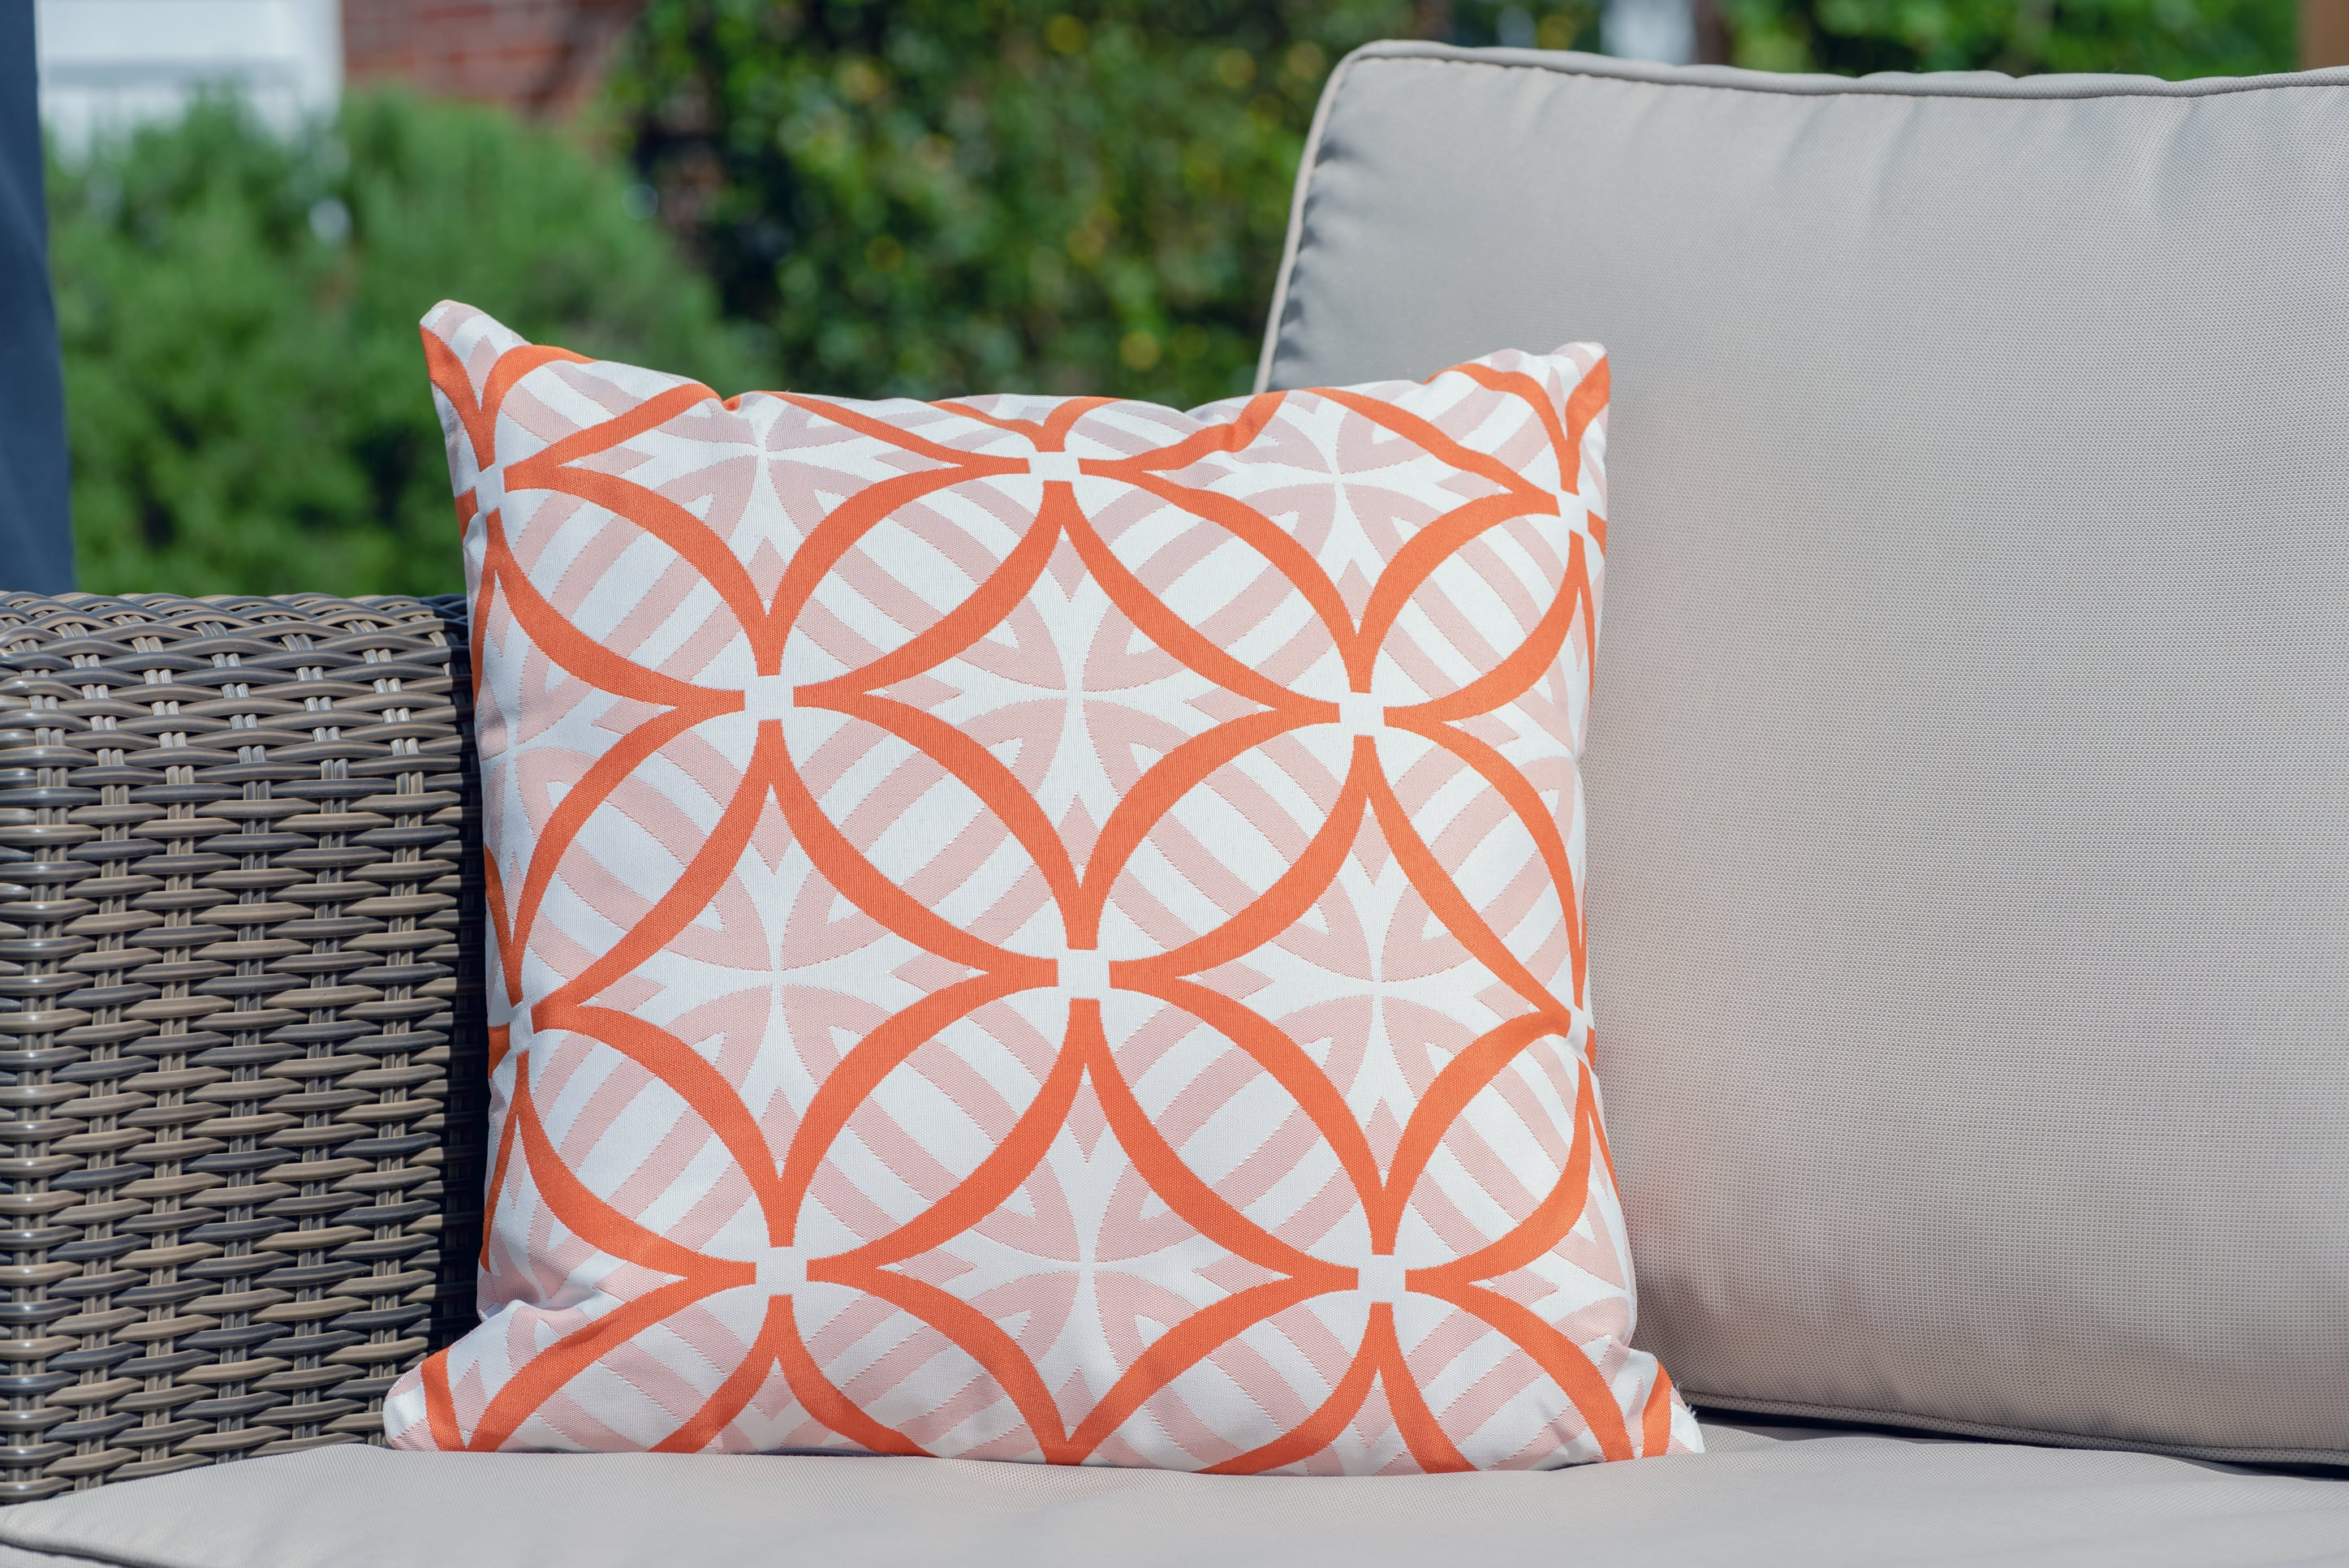 Luxury Cushion in Coolum Orange Bean Bag Cushion armadillosun